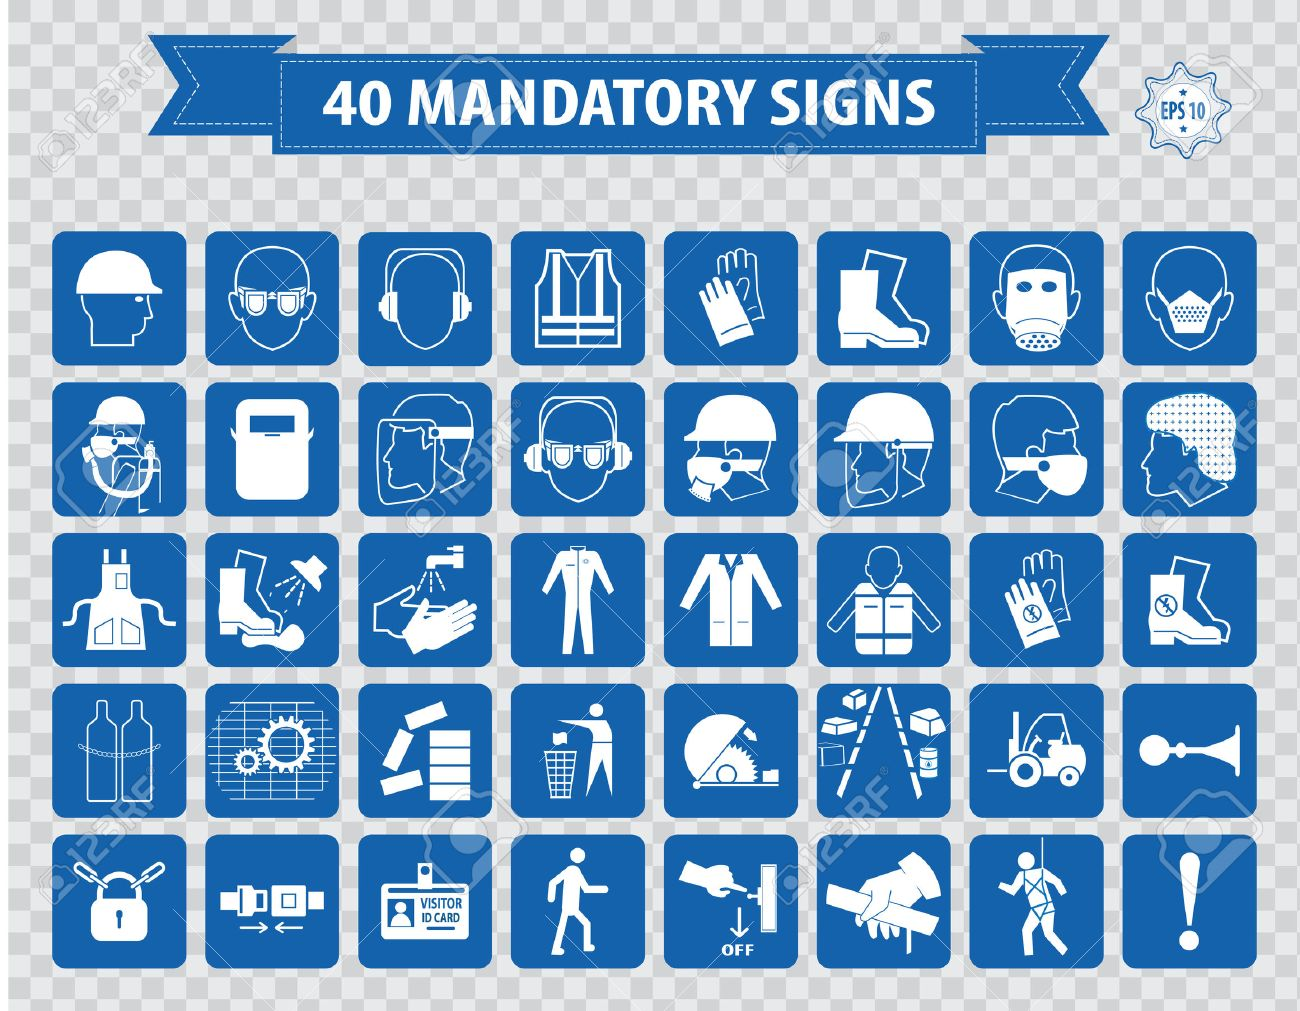 Construction Site Mandatory Signs face shield hard hat must be worn high visibility vest safety goggles pedestrian walkway gloves boots all accidents must report bind intersection sound horn - 40815223